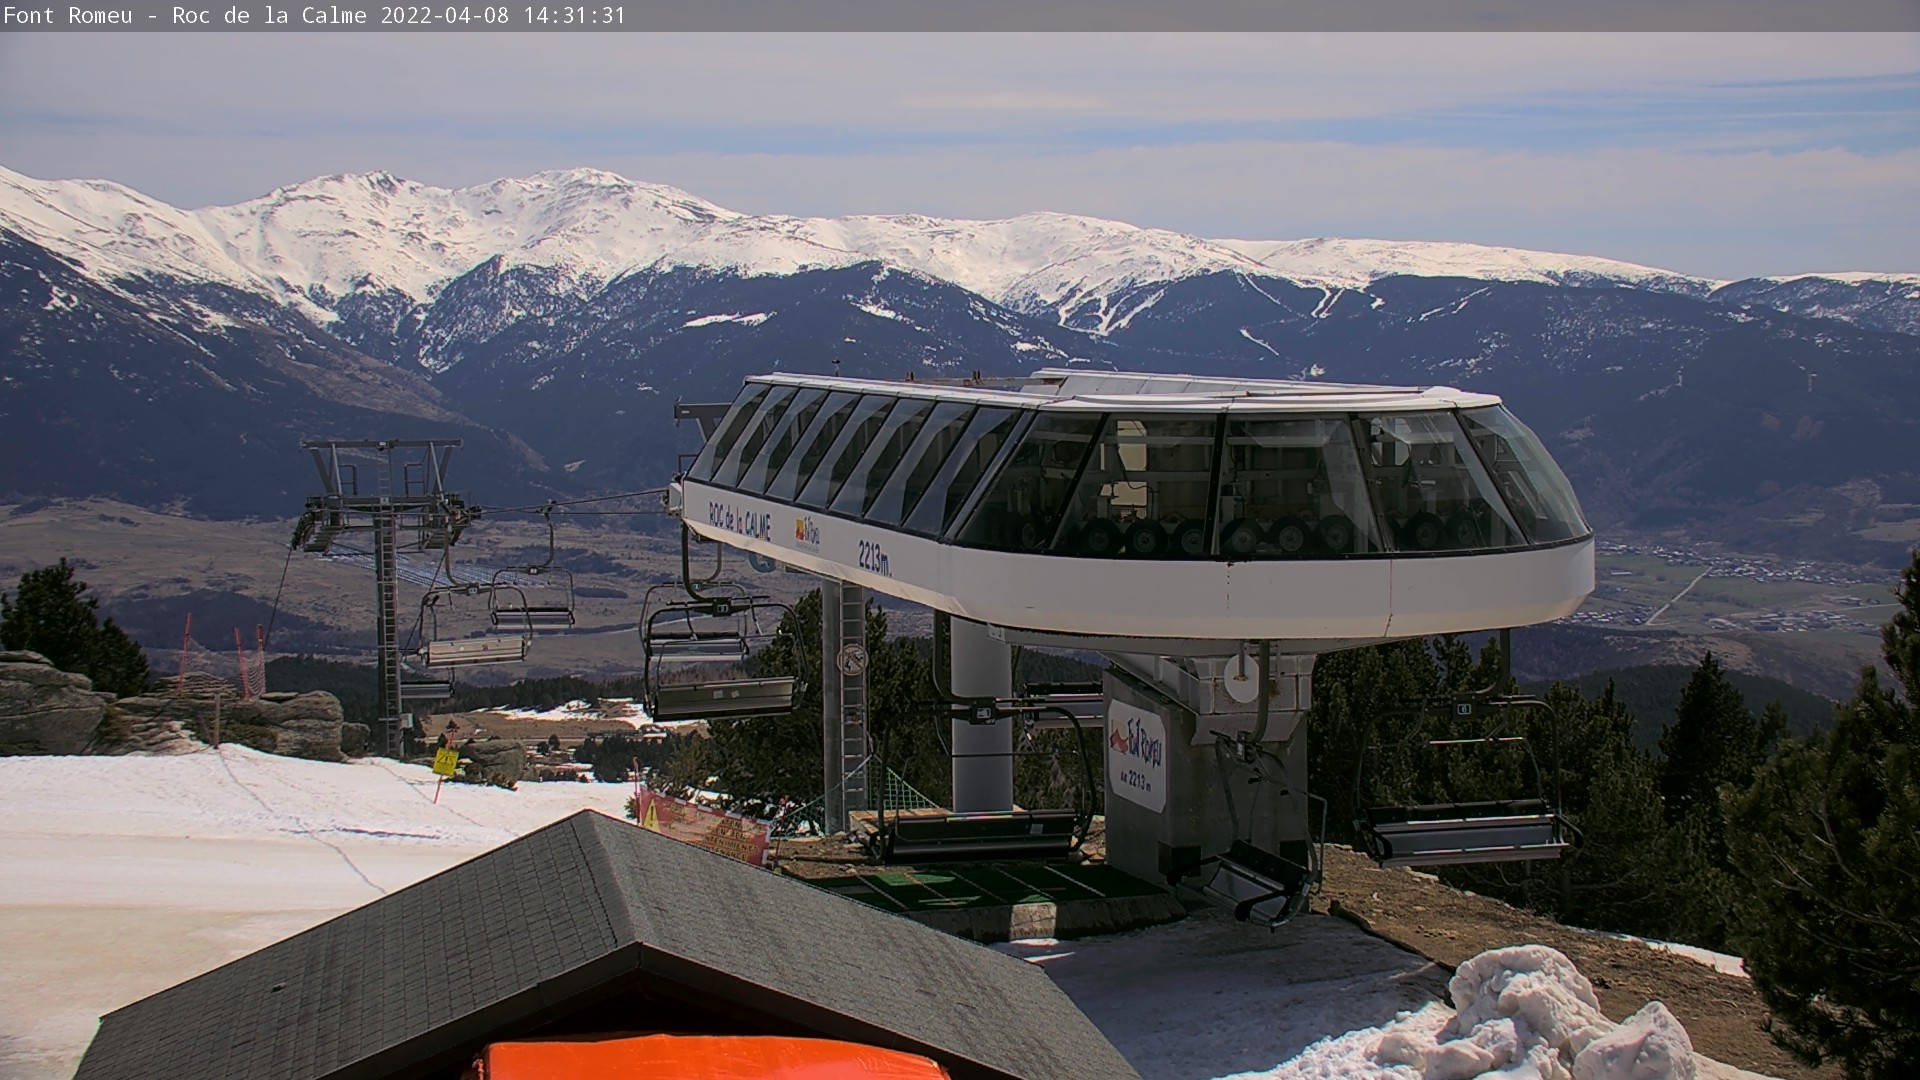 Webcam en Roc de la Calme